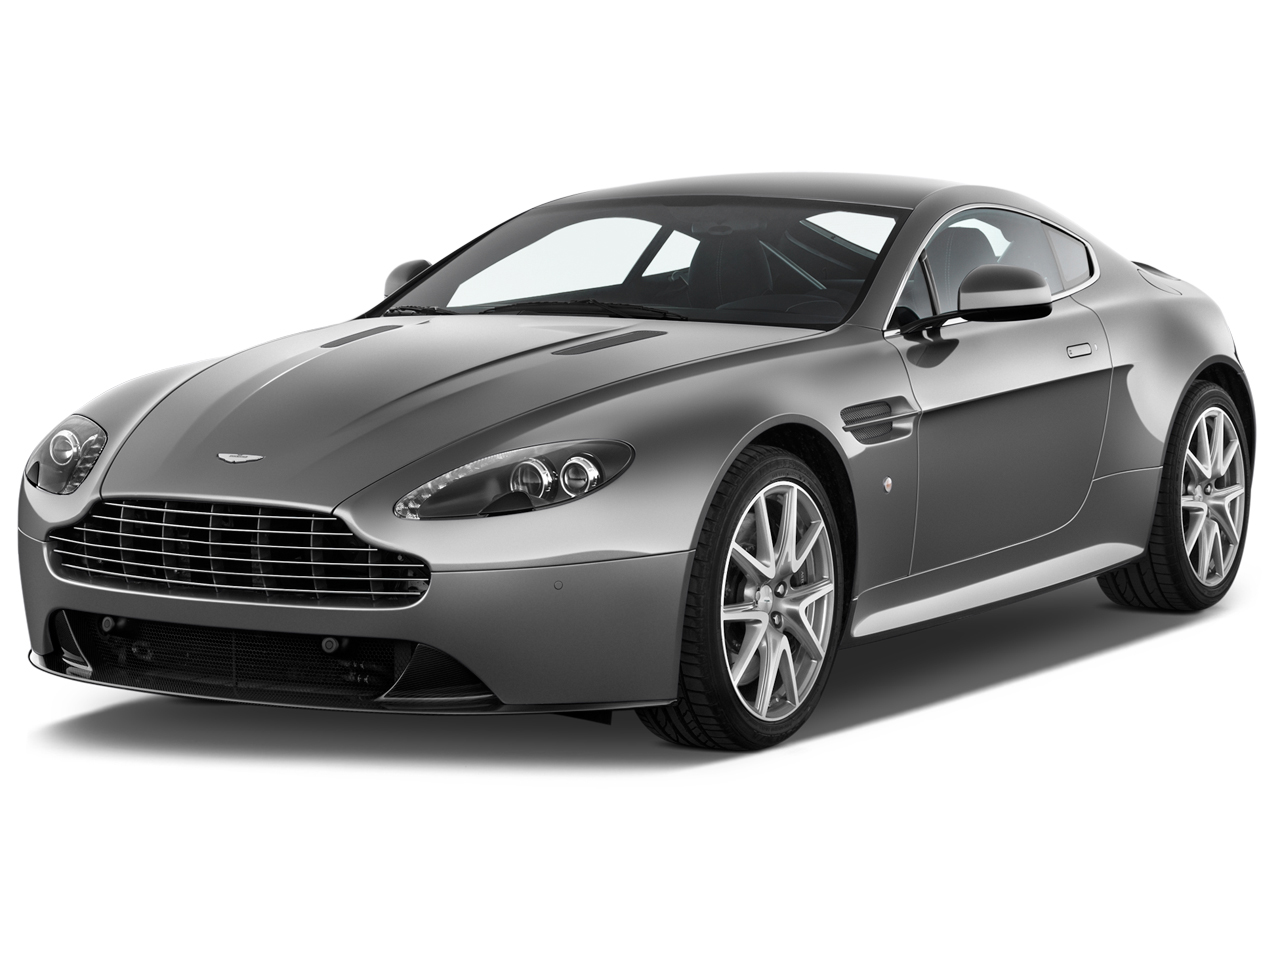 aston martin v8 vantage 2016. 2016 aston martin v8 vantage review, ratings, specs, prices, and photos - the car connection